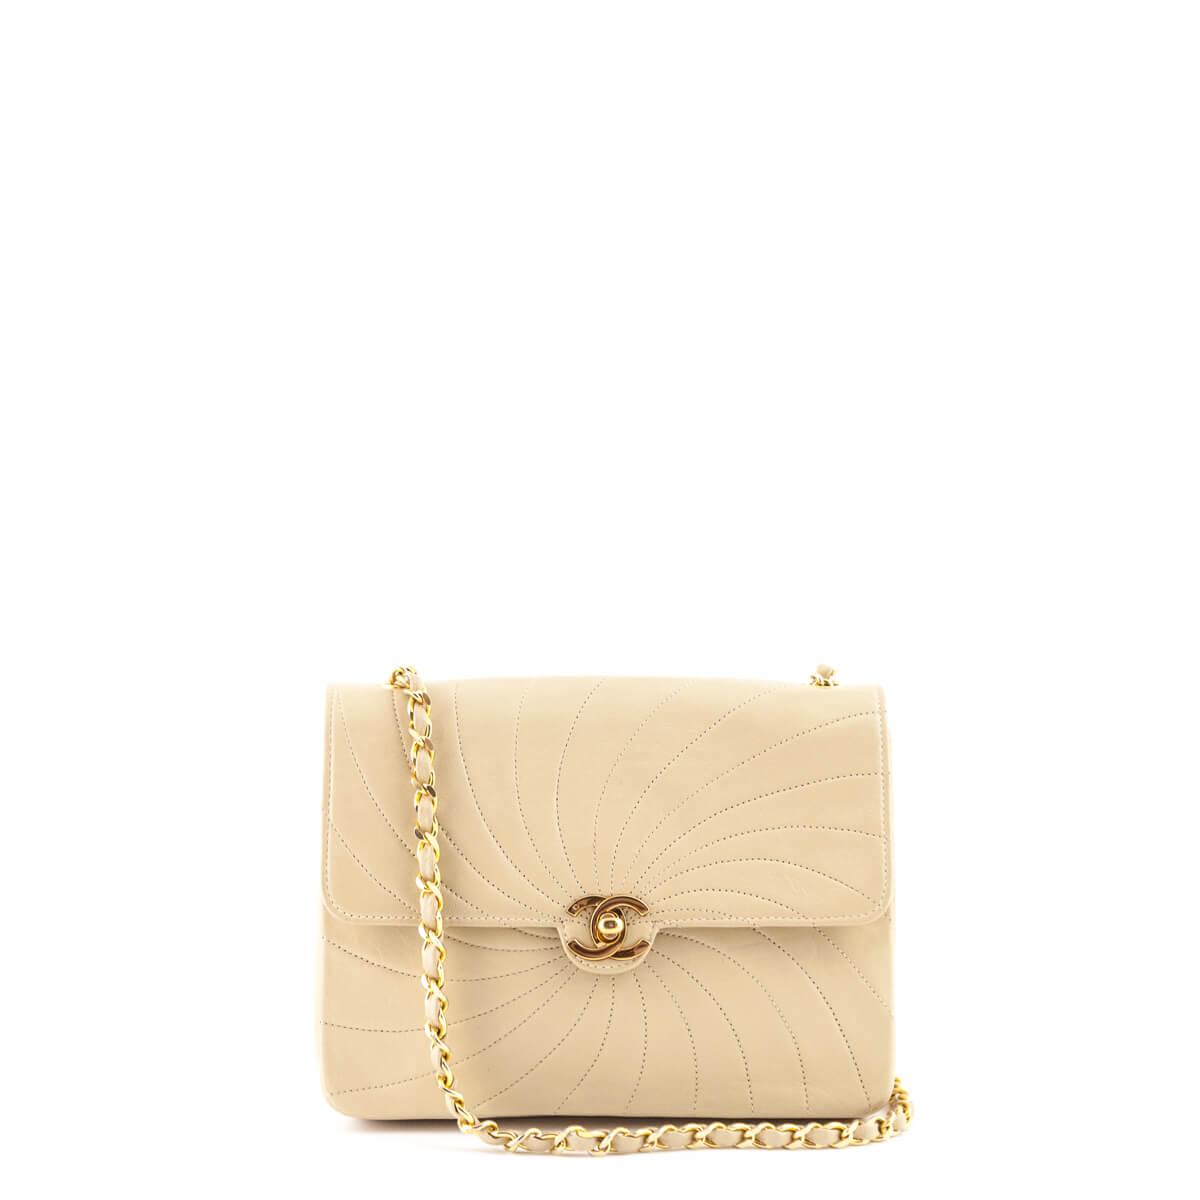 1f44887dc184a4 Chanel Beige Spiral Quilted Lambskin Vintage Flap GHW - LOVE that BAG -  Preowned Authentic Designer ...